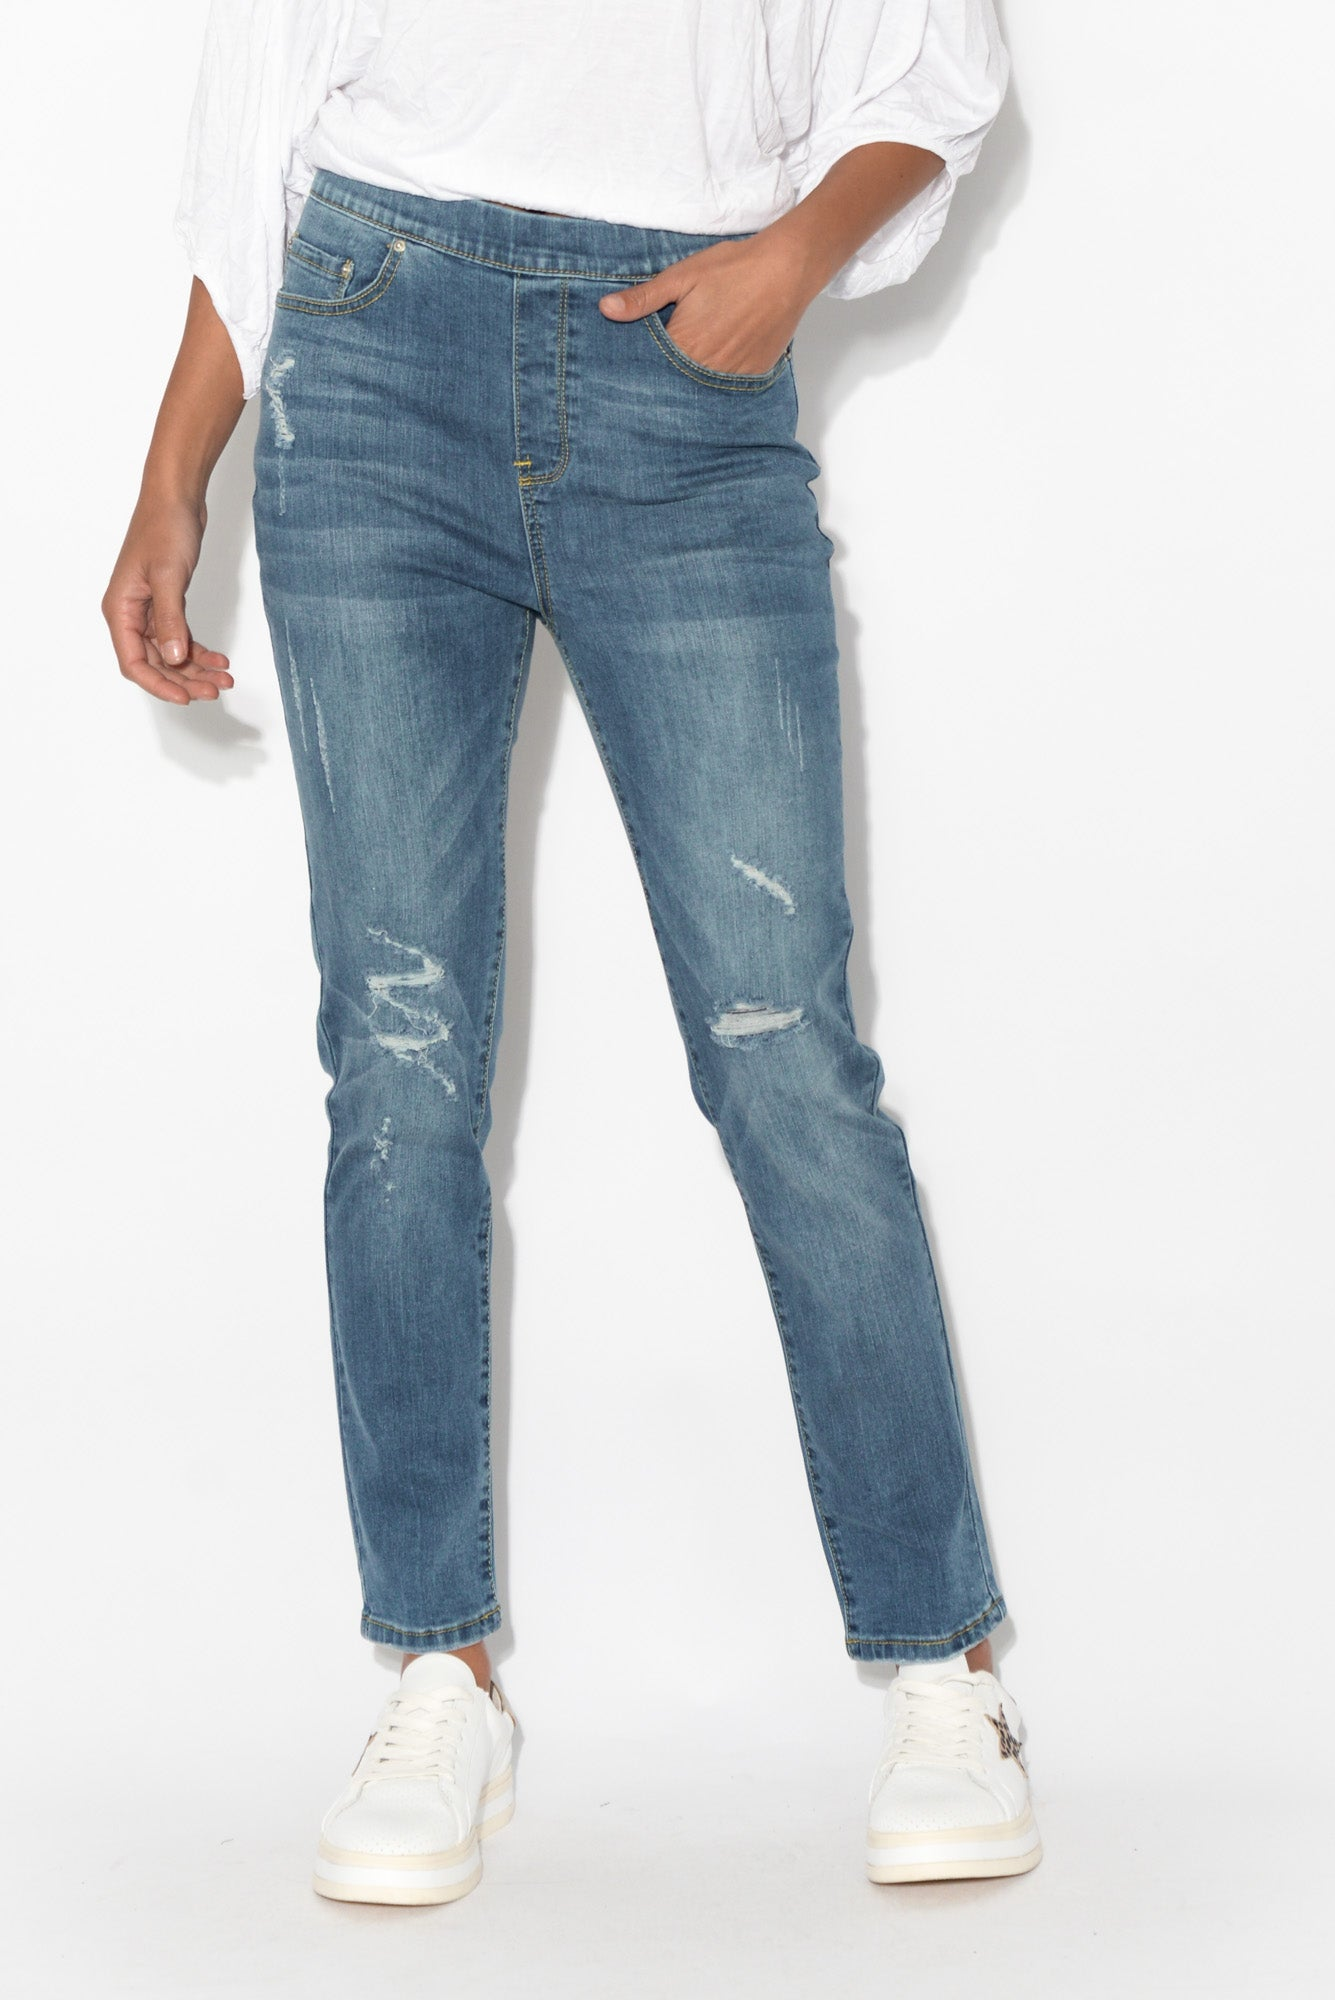 Zadie Distressed Blue Stretch Jean